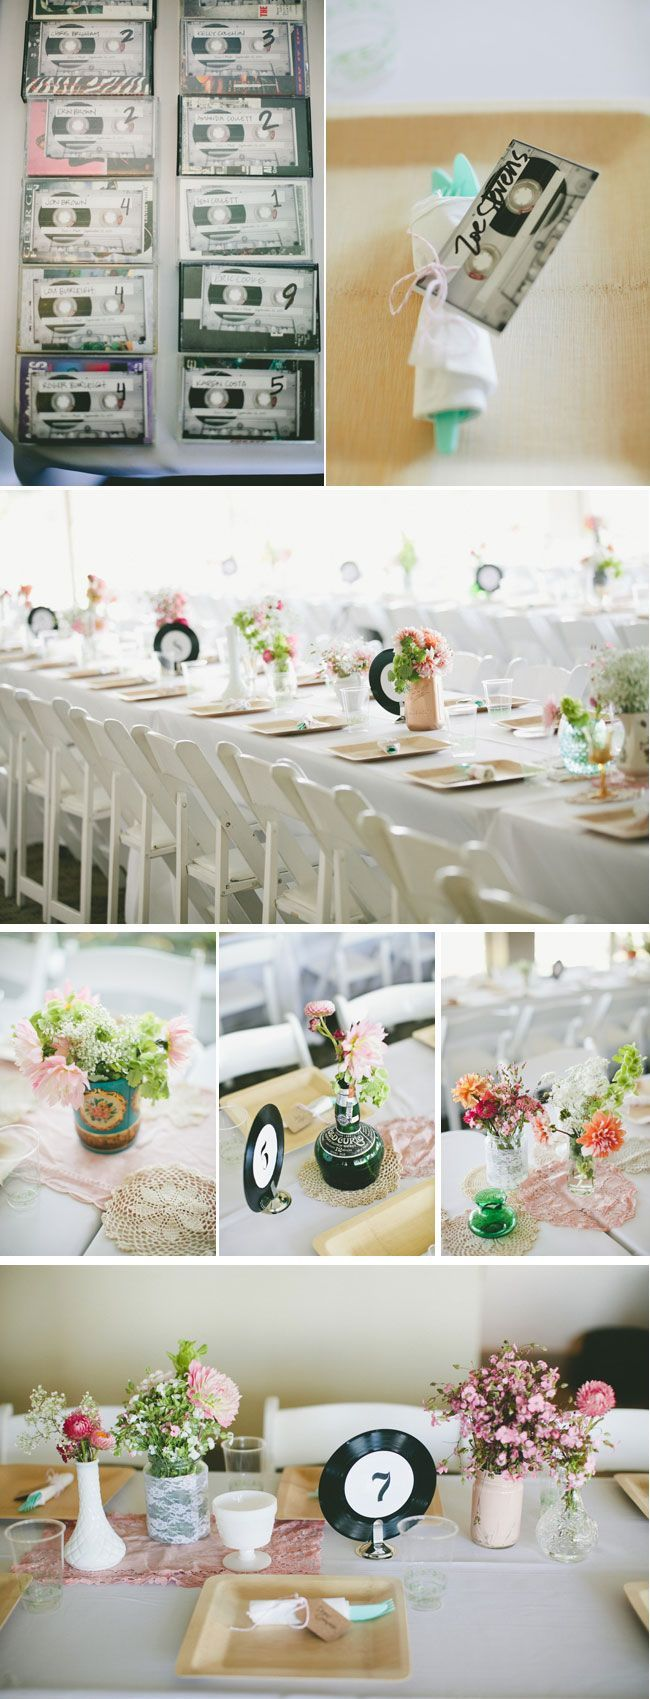 12 best music theme images on pinterest music theme weddings erin and matts wedding music themed junglespirit Image collections